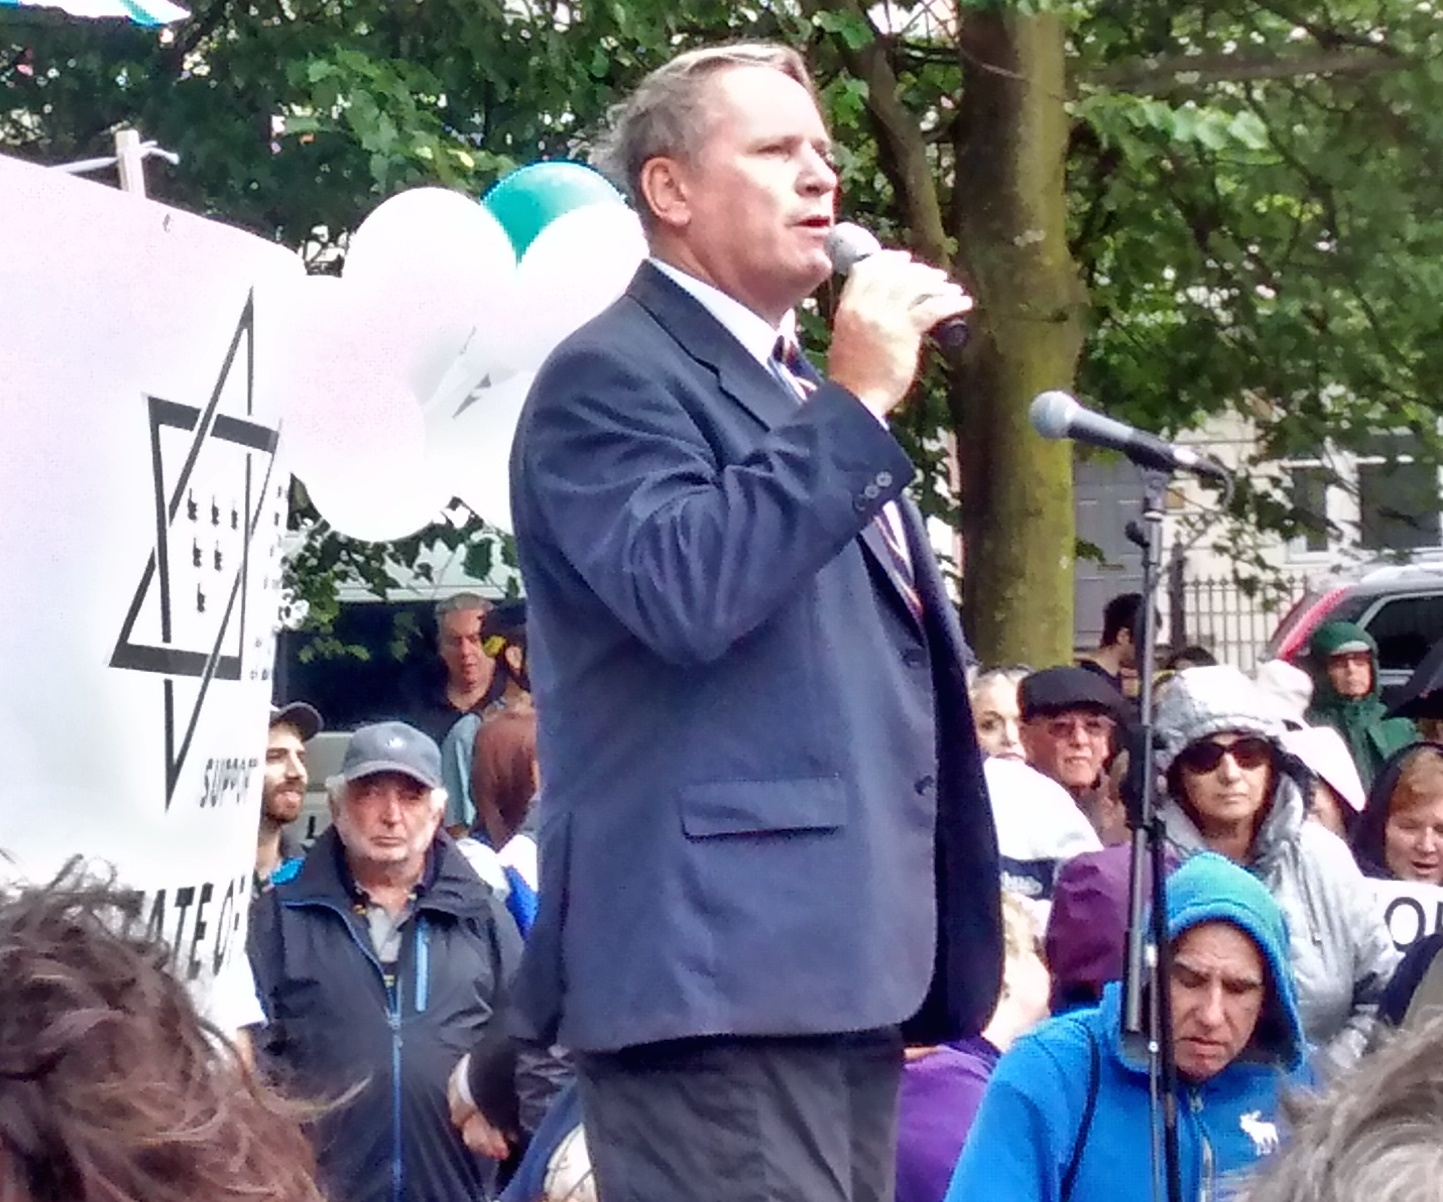 Col. Richard Kemp at SFI's Rally for Israel and peace Brighton UK